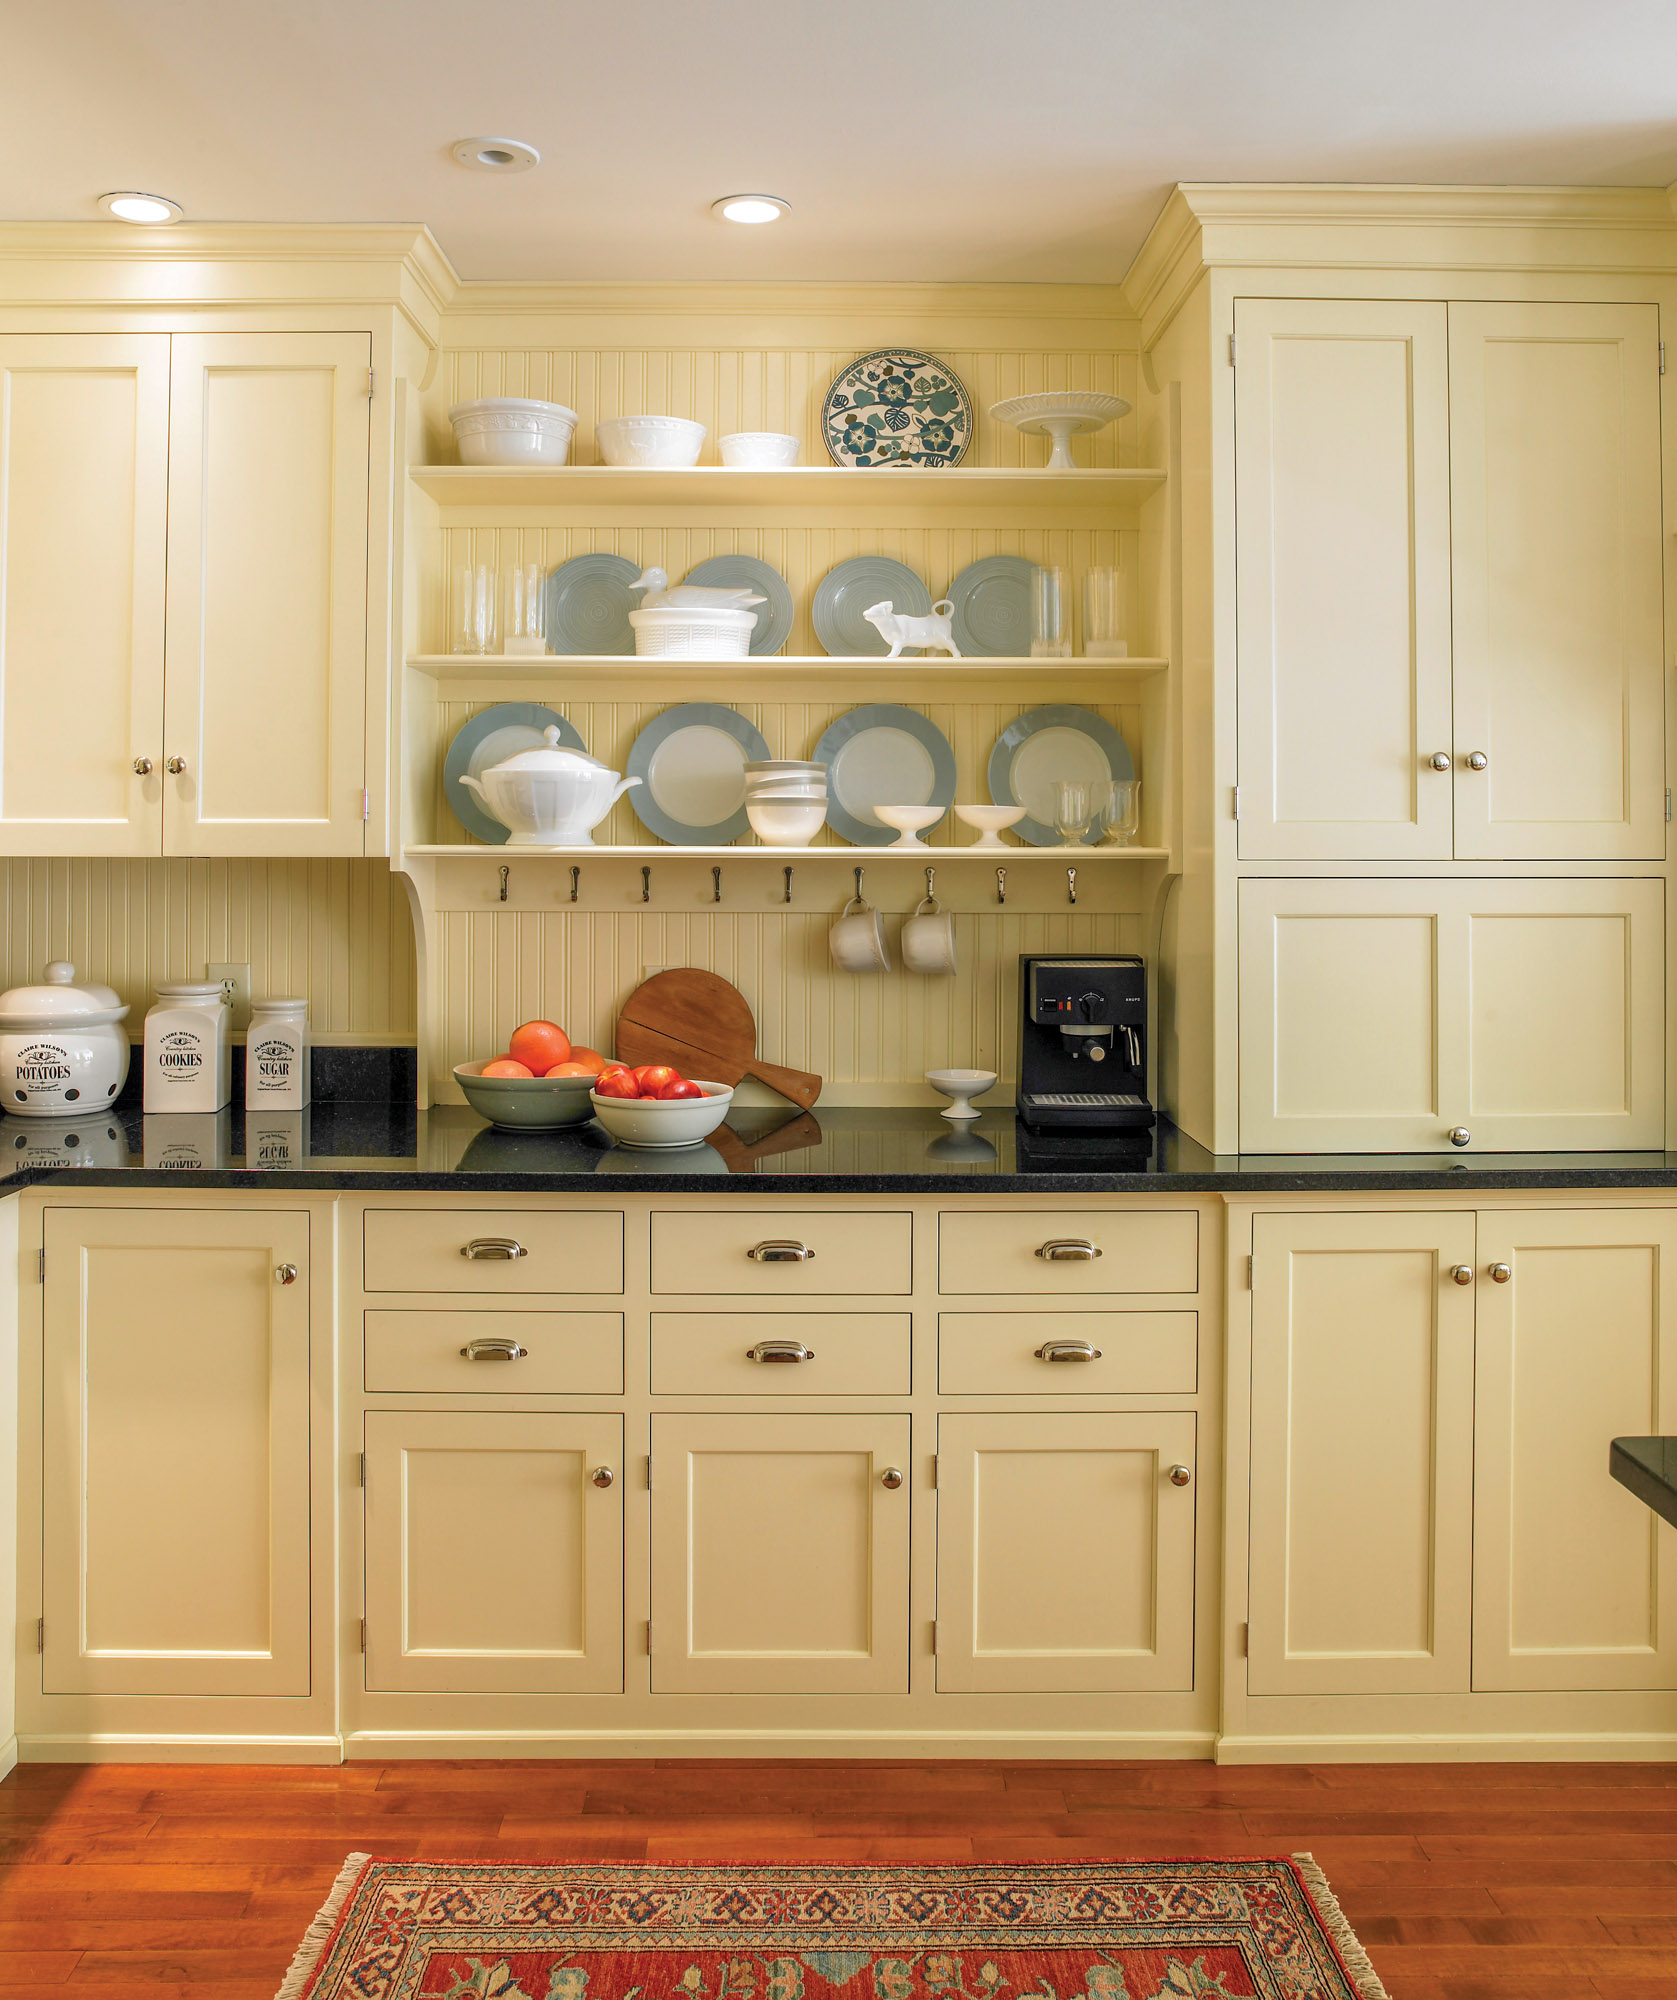 Consumer Reports Kitchen Cabinets: Old House Journal Magazine